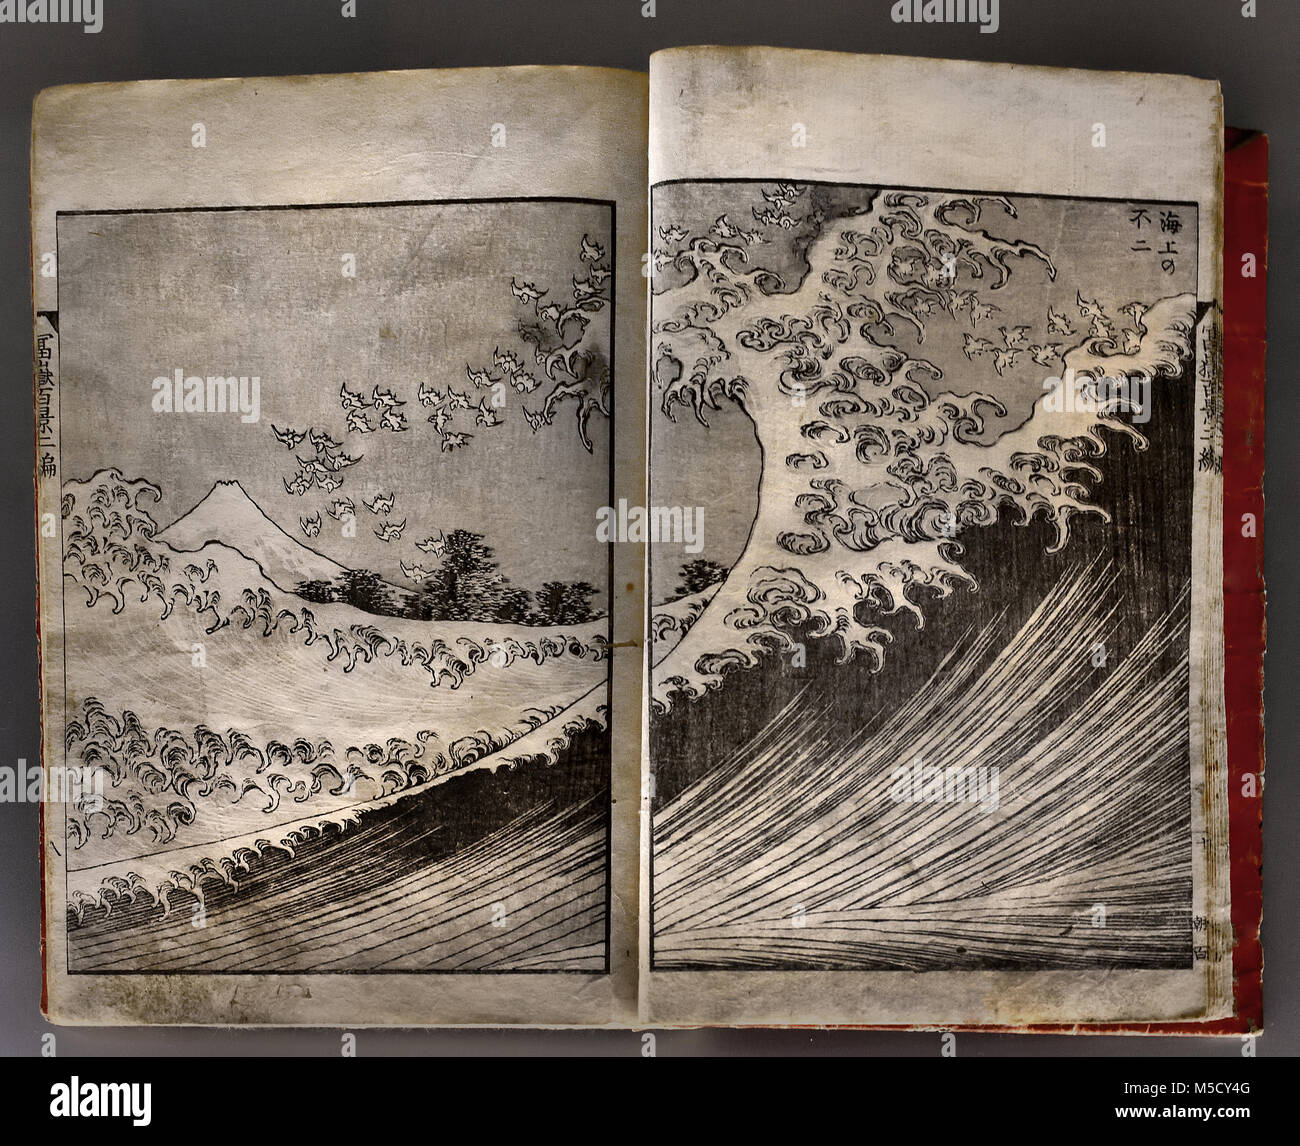 'One hundred views of Mt. Fuji - vol. II' - Illustrations  1835 Katsushika HOKUSAI (1760-1849)19th,century, - Stock Image